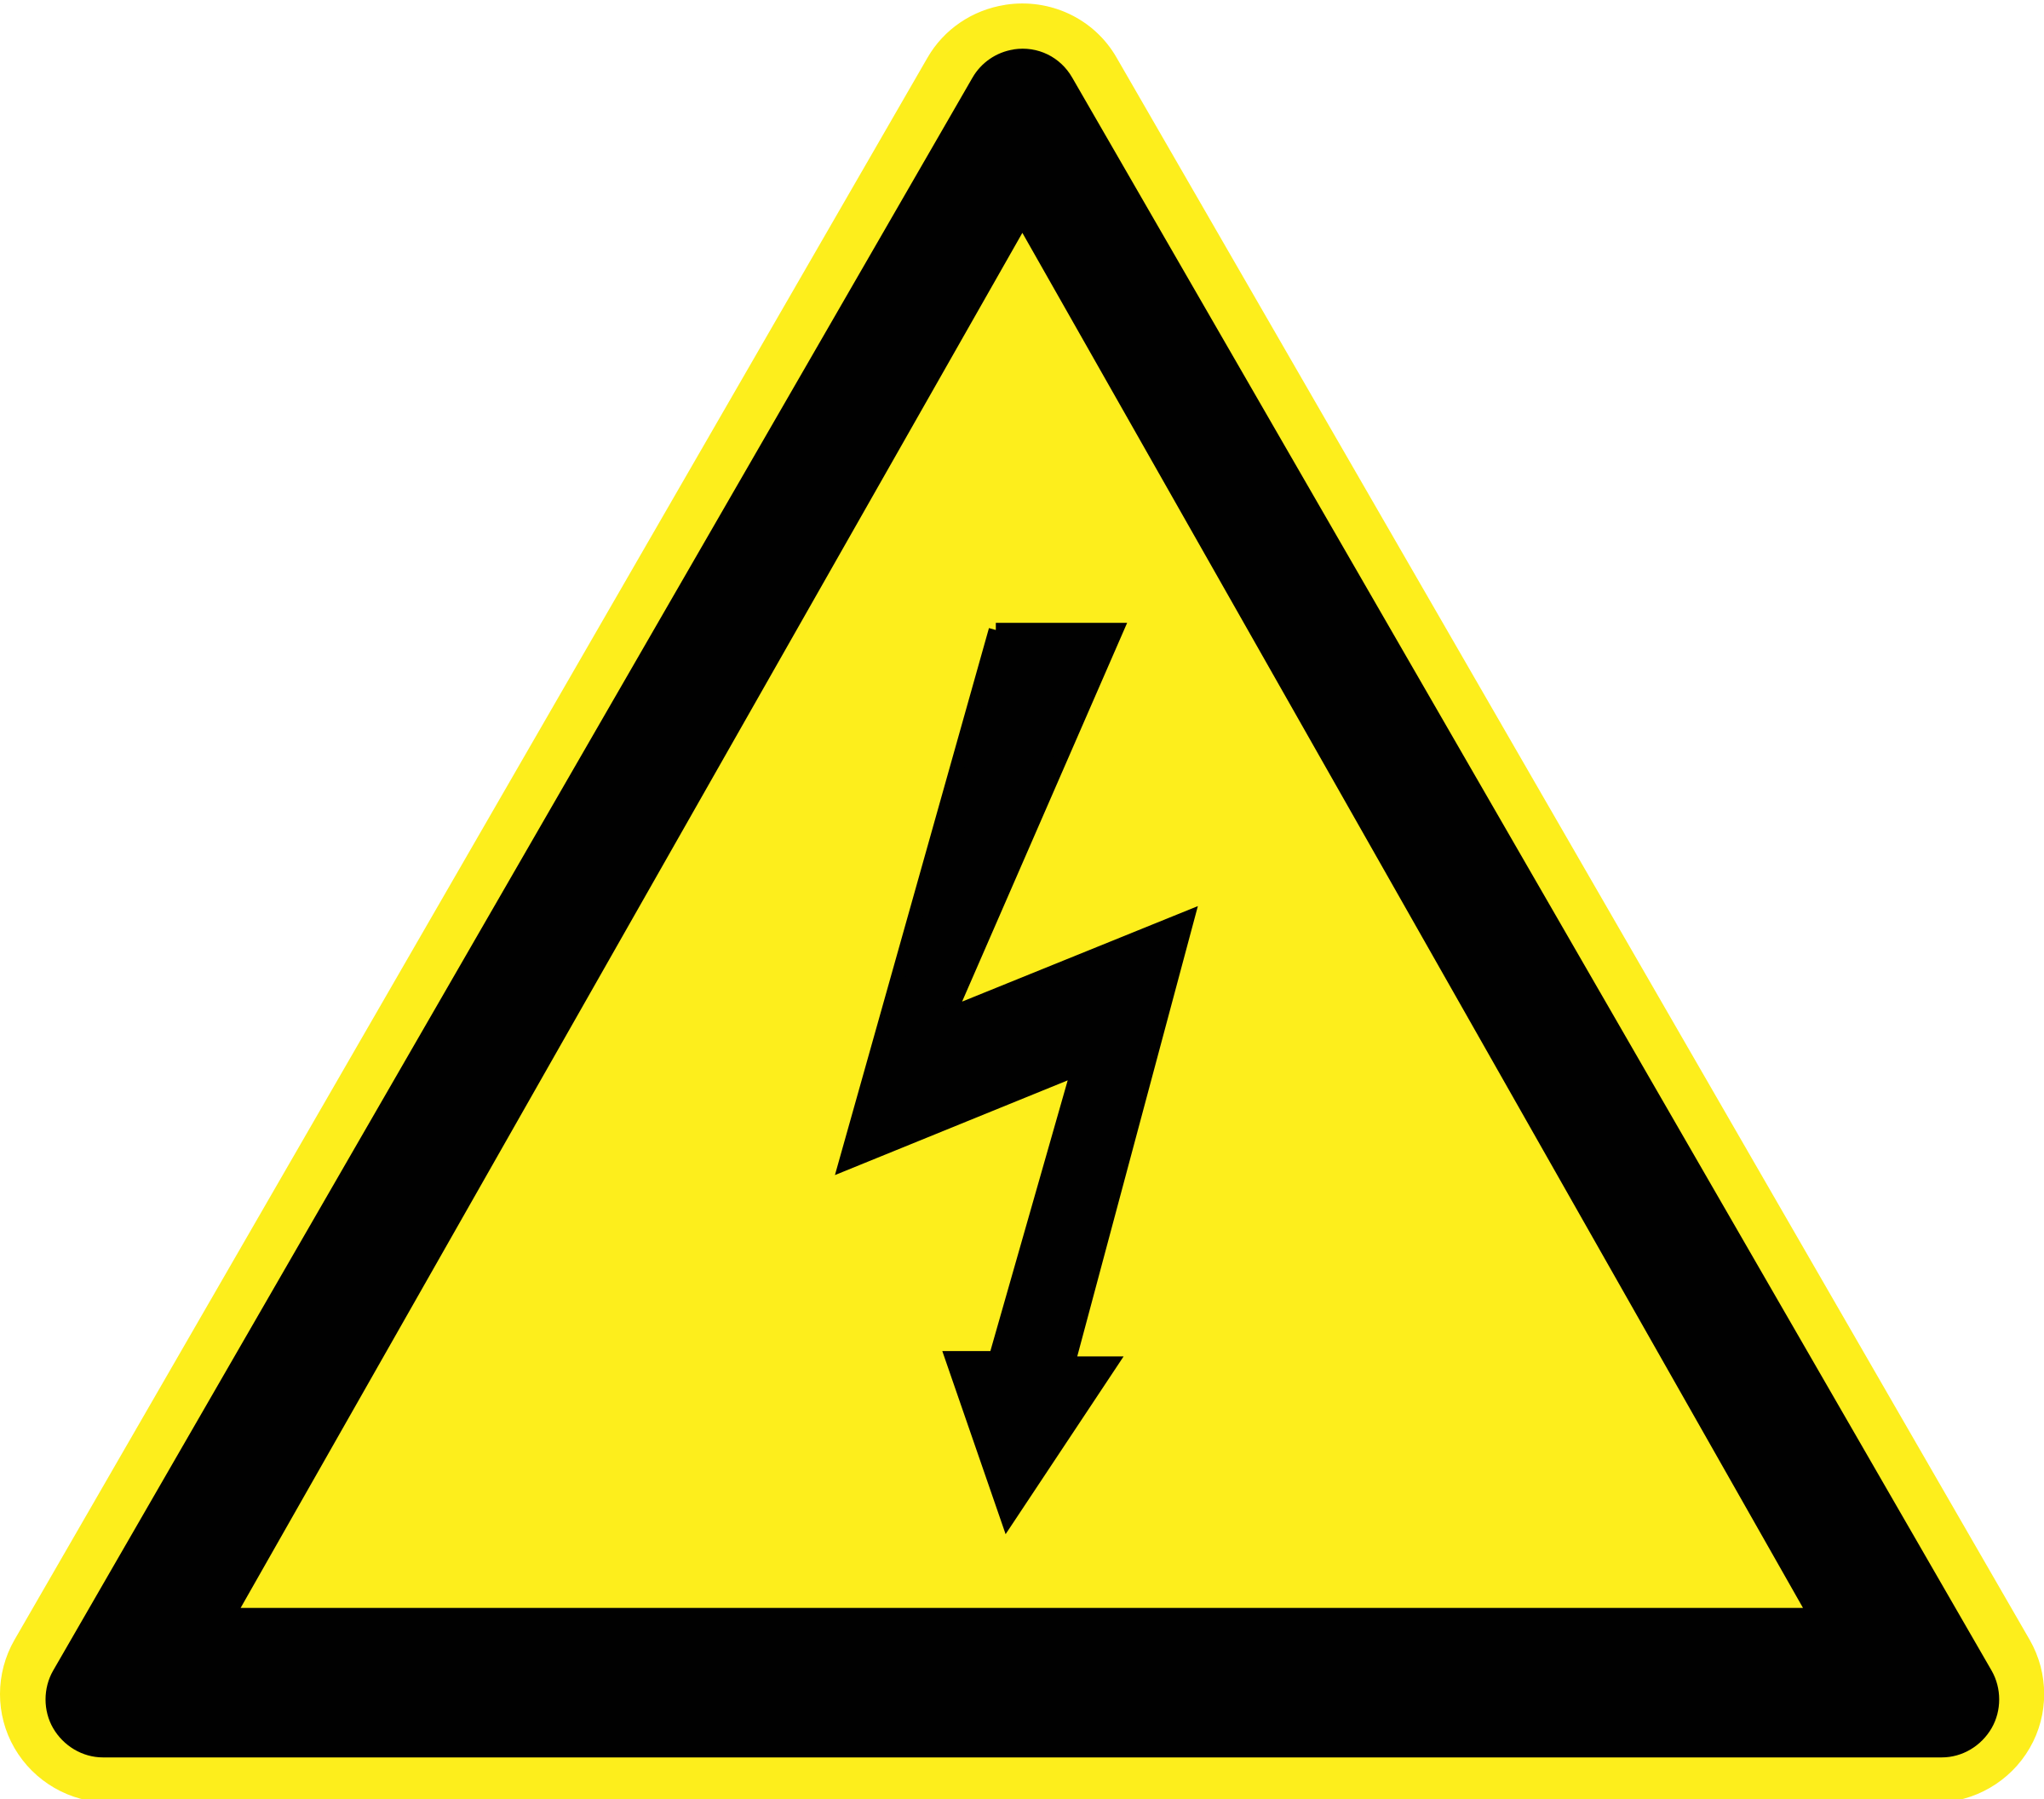 Signs hazard warning big. Word clipart electricity jpg royalty free stock